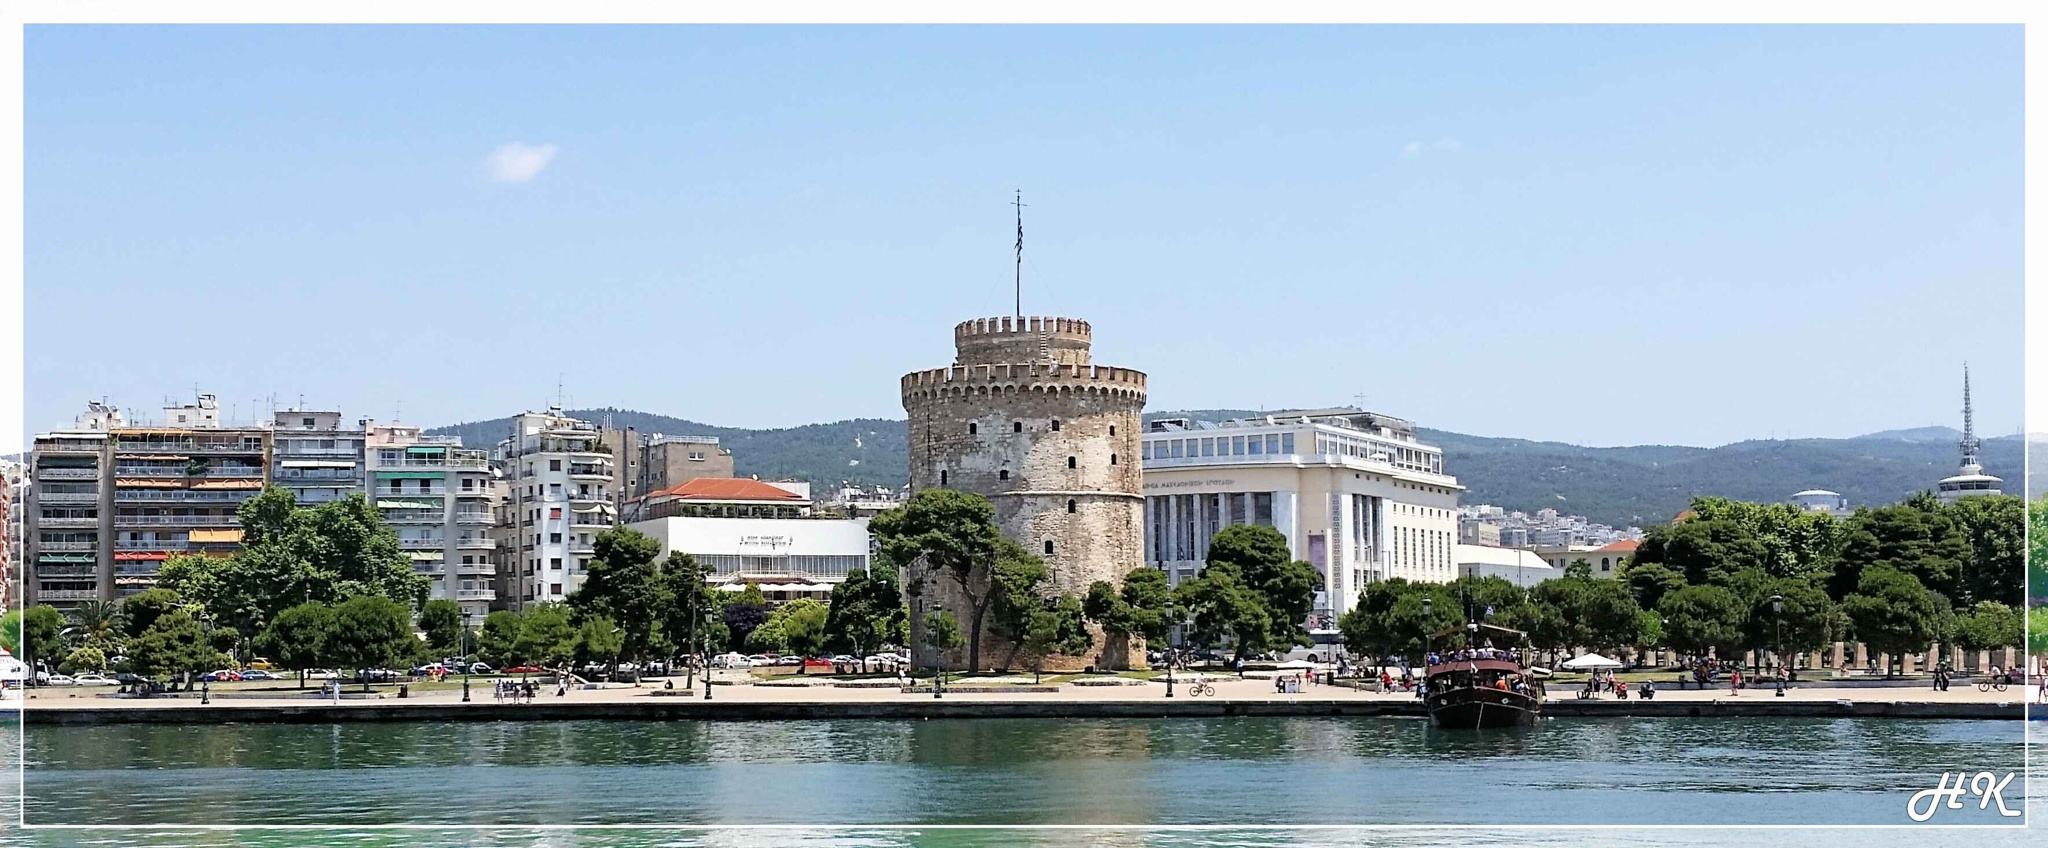 Thessaloniki, White Tower, The symbol of the city! by ekyros